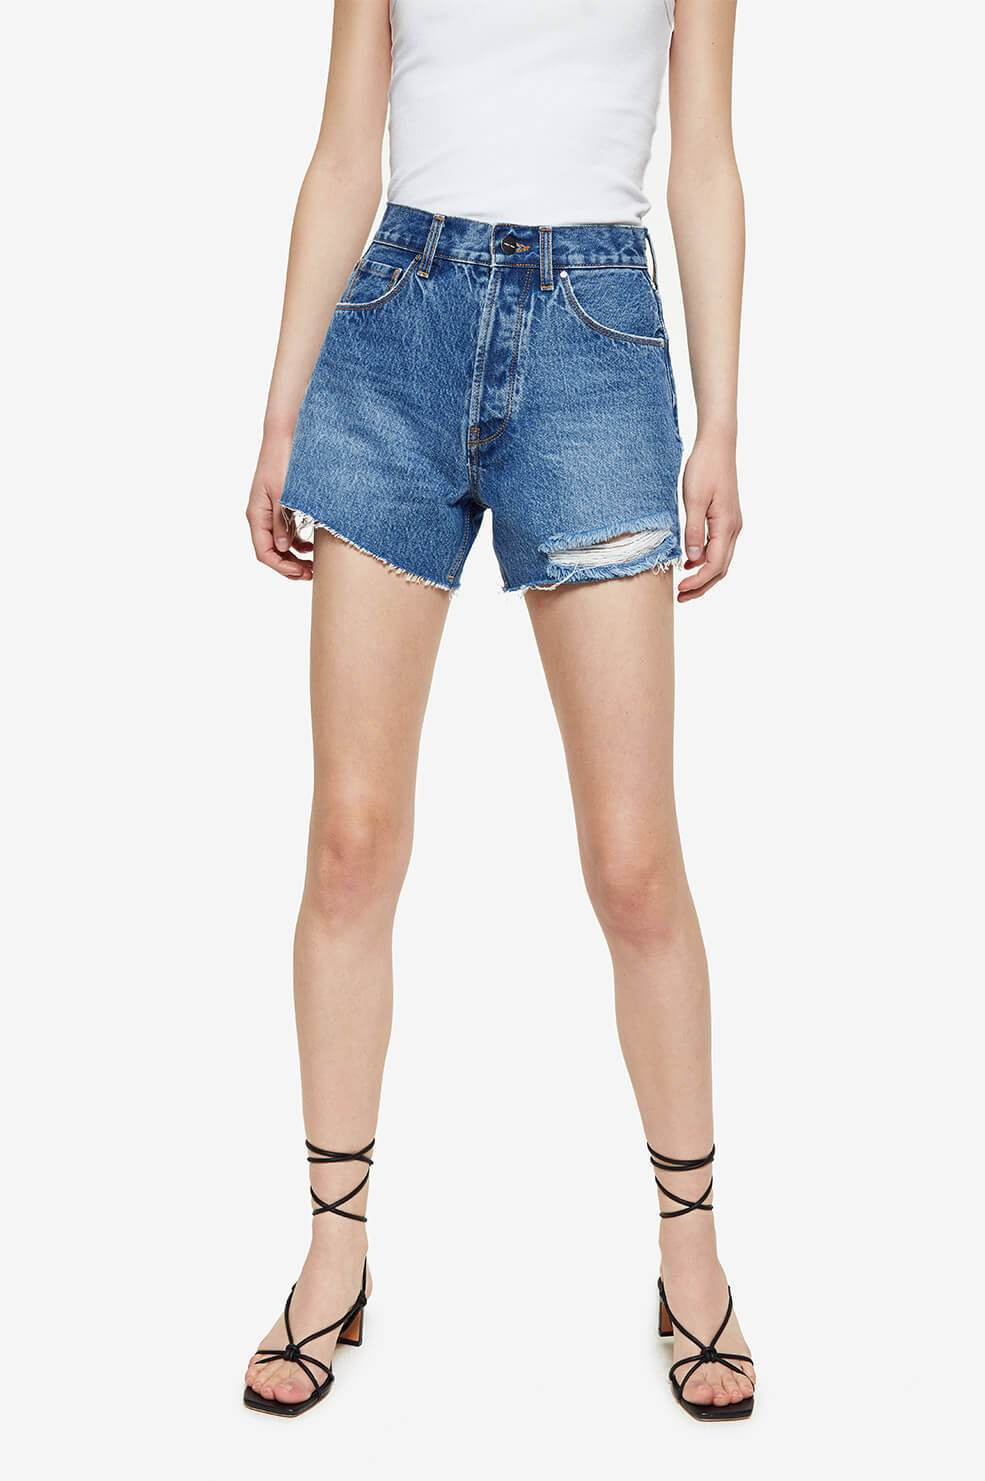 Anine Bing Womens Shorts Anine Bing | Gina Short - Blue Sea